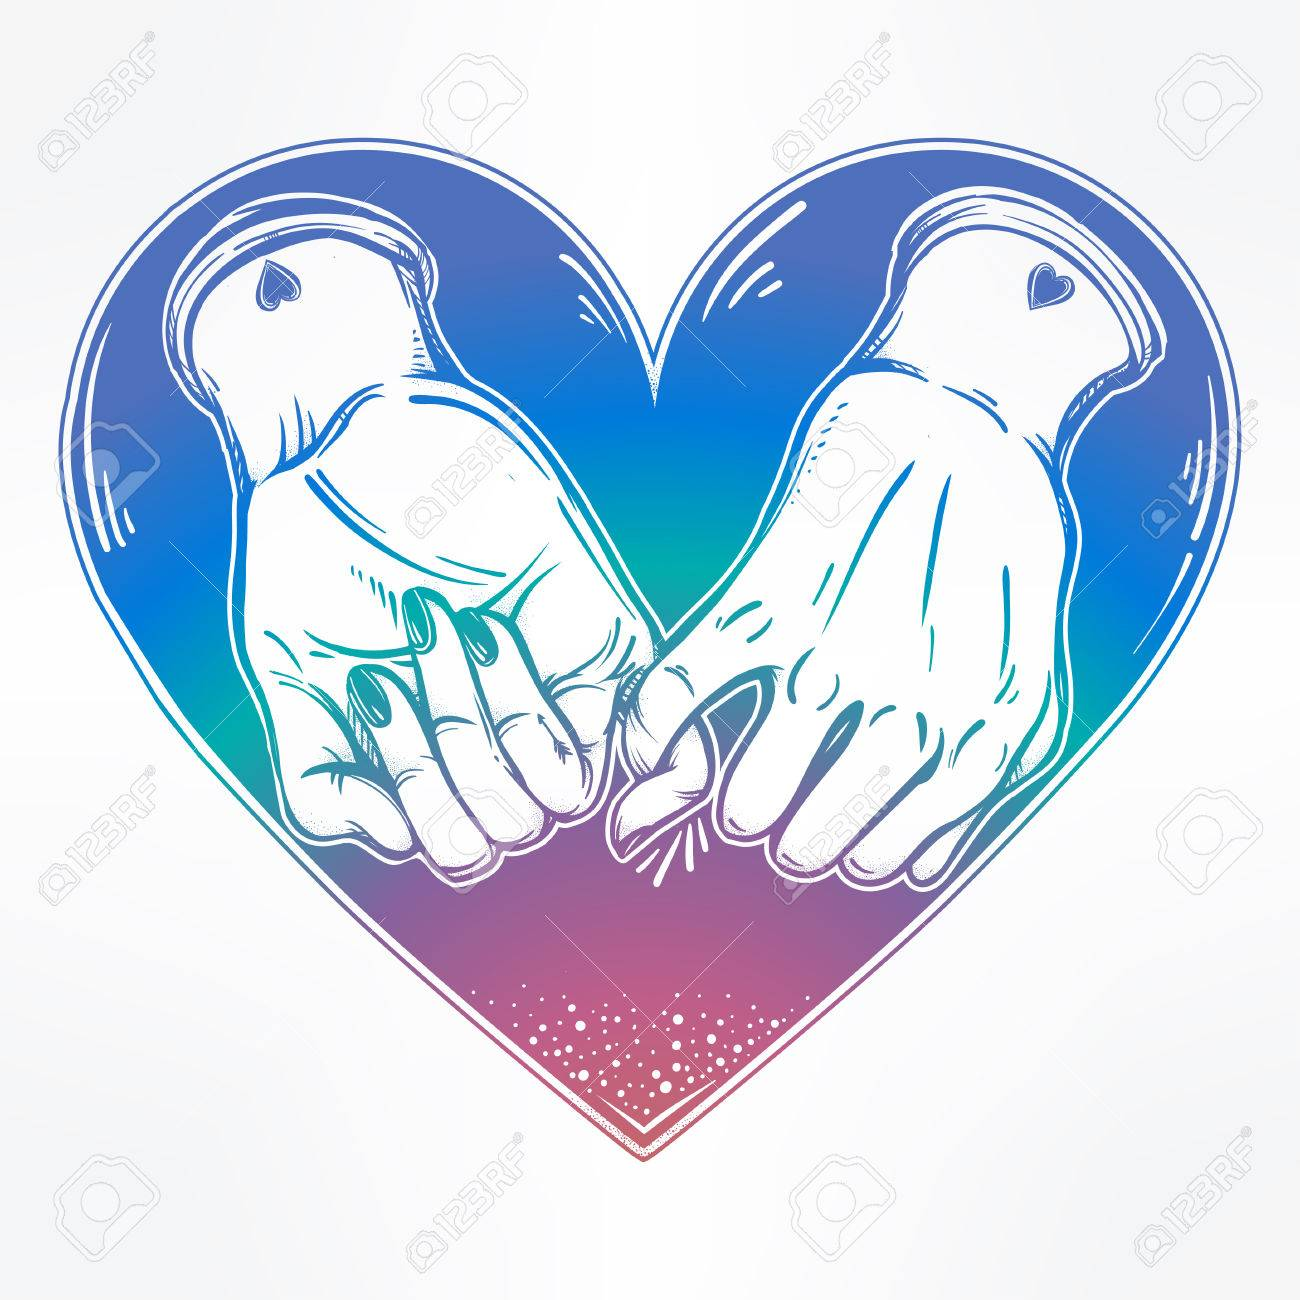 Pinky promise hand holding on the heart background vector trendy friendship symbol for your use pinky promise hand holding on the heart background vector illustration isolated minimalist tattoo buycottarizona Choice Image